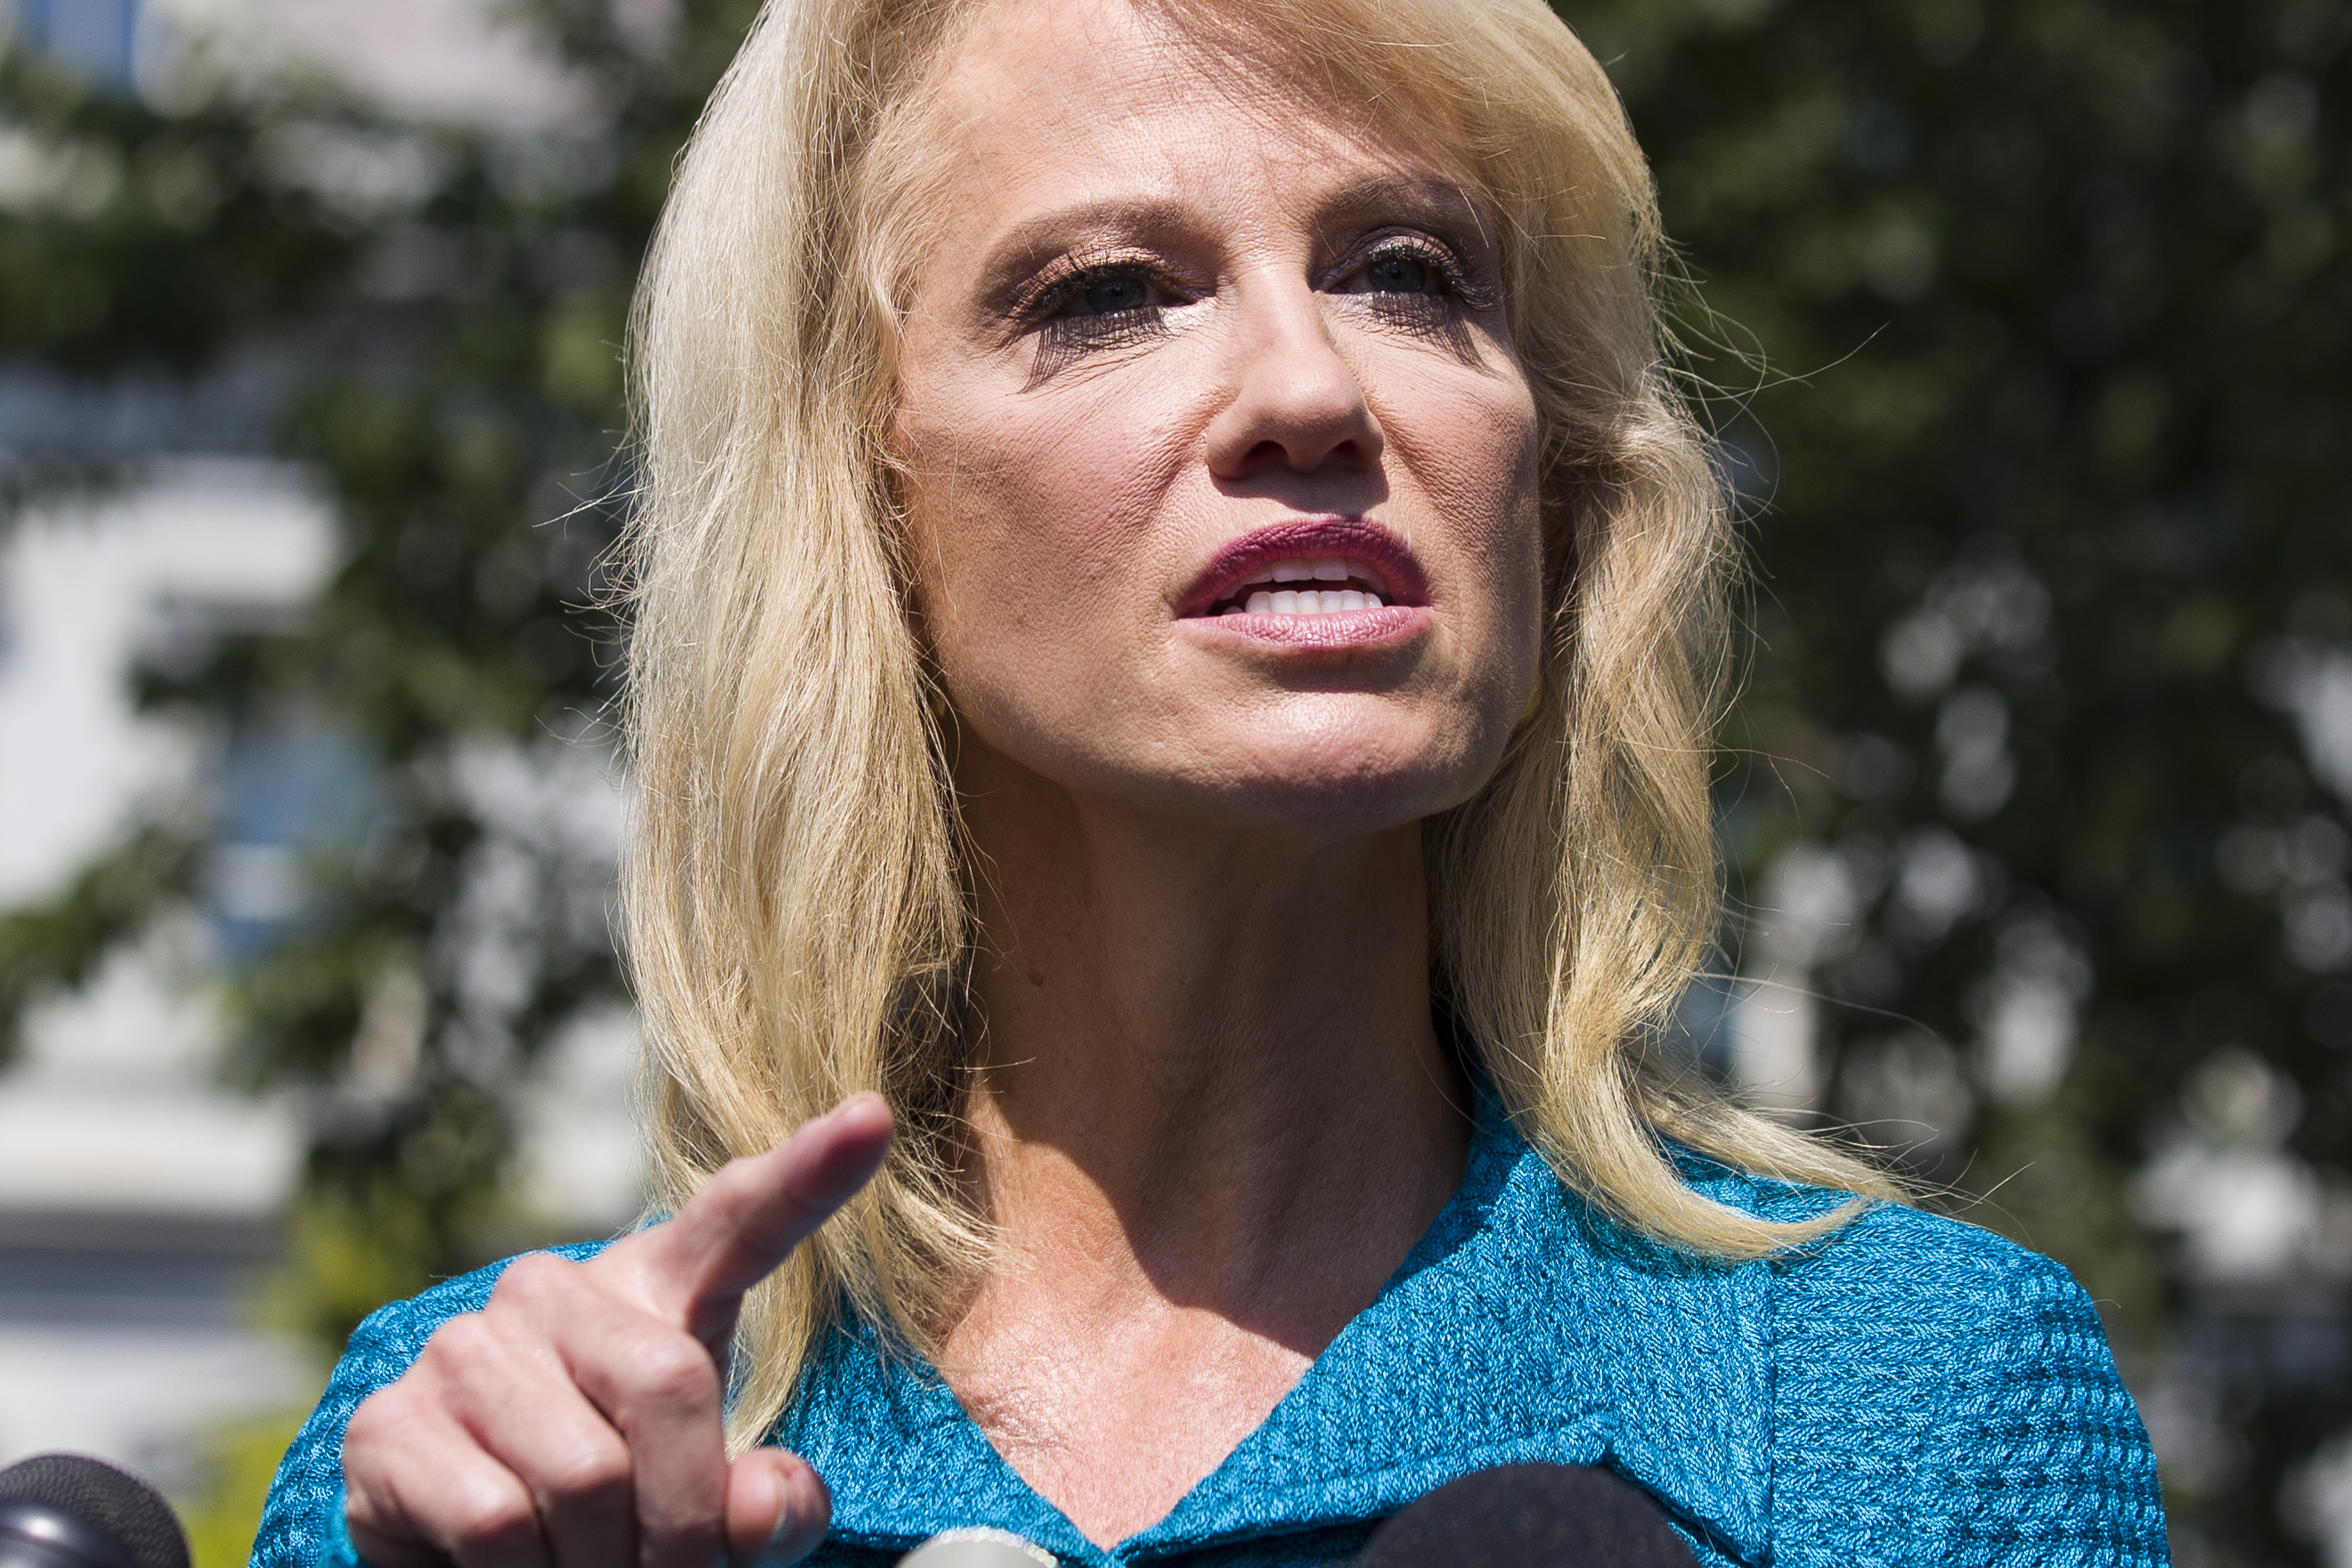 Kellyanne Conway is mad media downplays Dayton shooters liberal views, although no link is seen to massacre